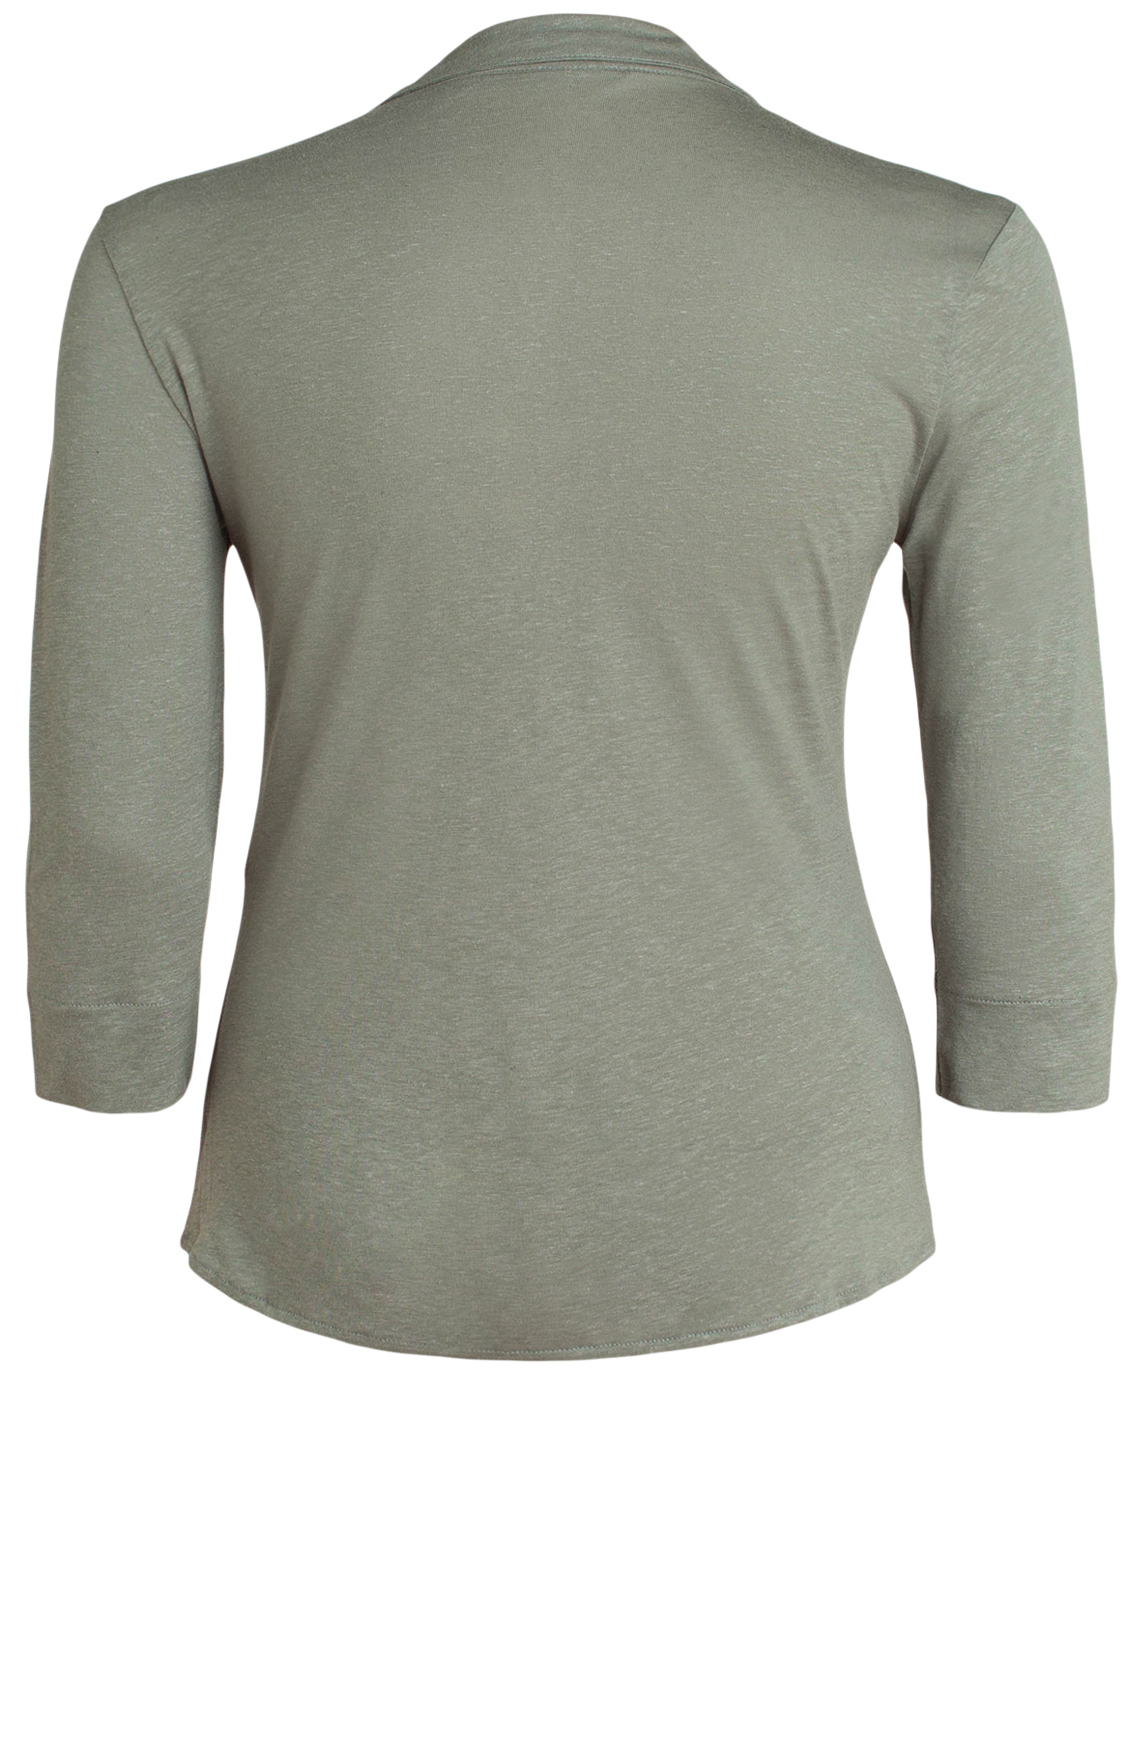 Moscow Dames Blouse groen